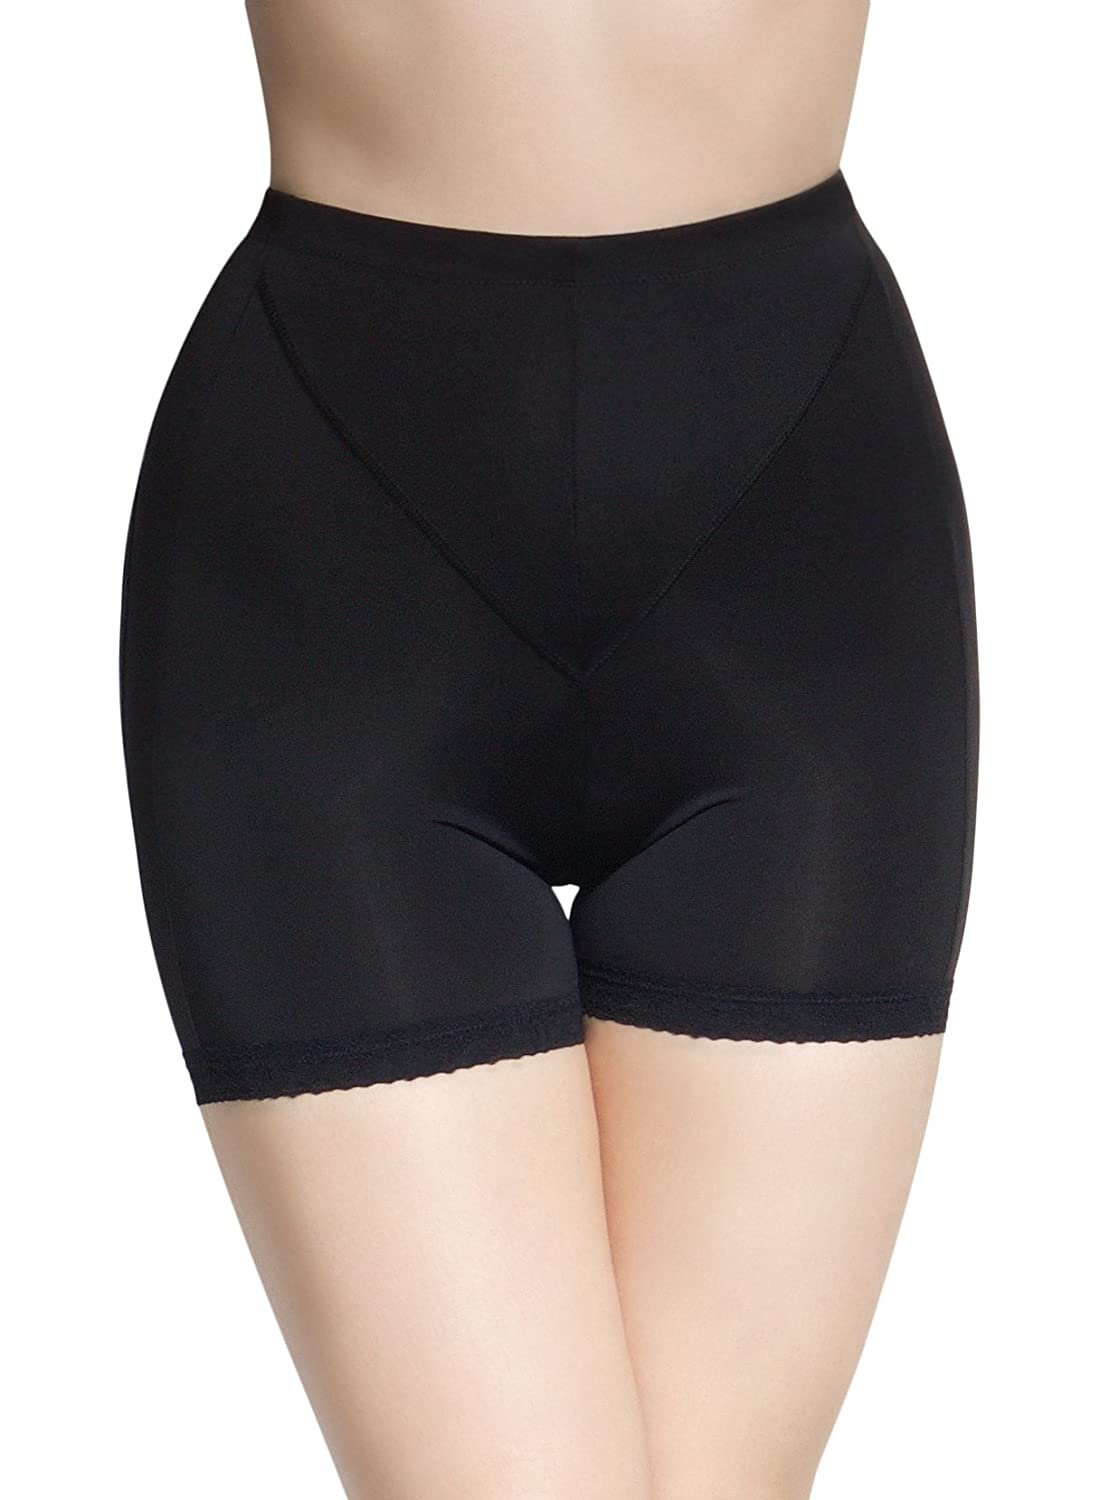 SodaCoda Improved Bum Bra Butt Lifter Panty with Tummy Control restores Pertness to Sagging Buttocks Black Nude (S-XL)